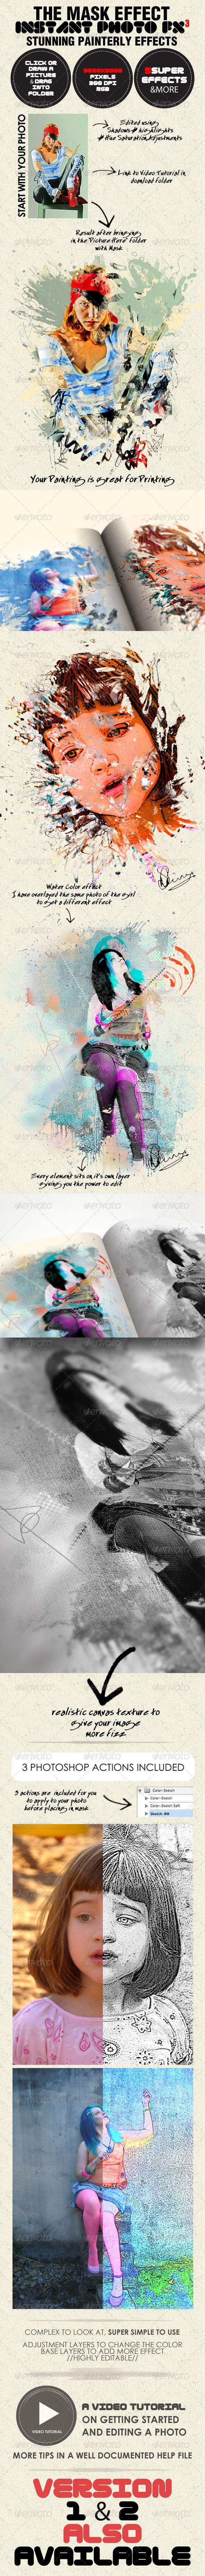 Photo-Fx-Auto Mask#3 - Stunning Photo Effects - GraphicRiver Item for Sale